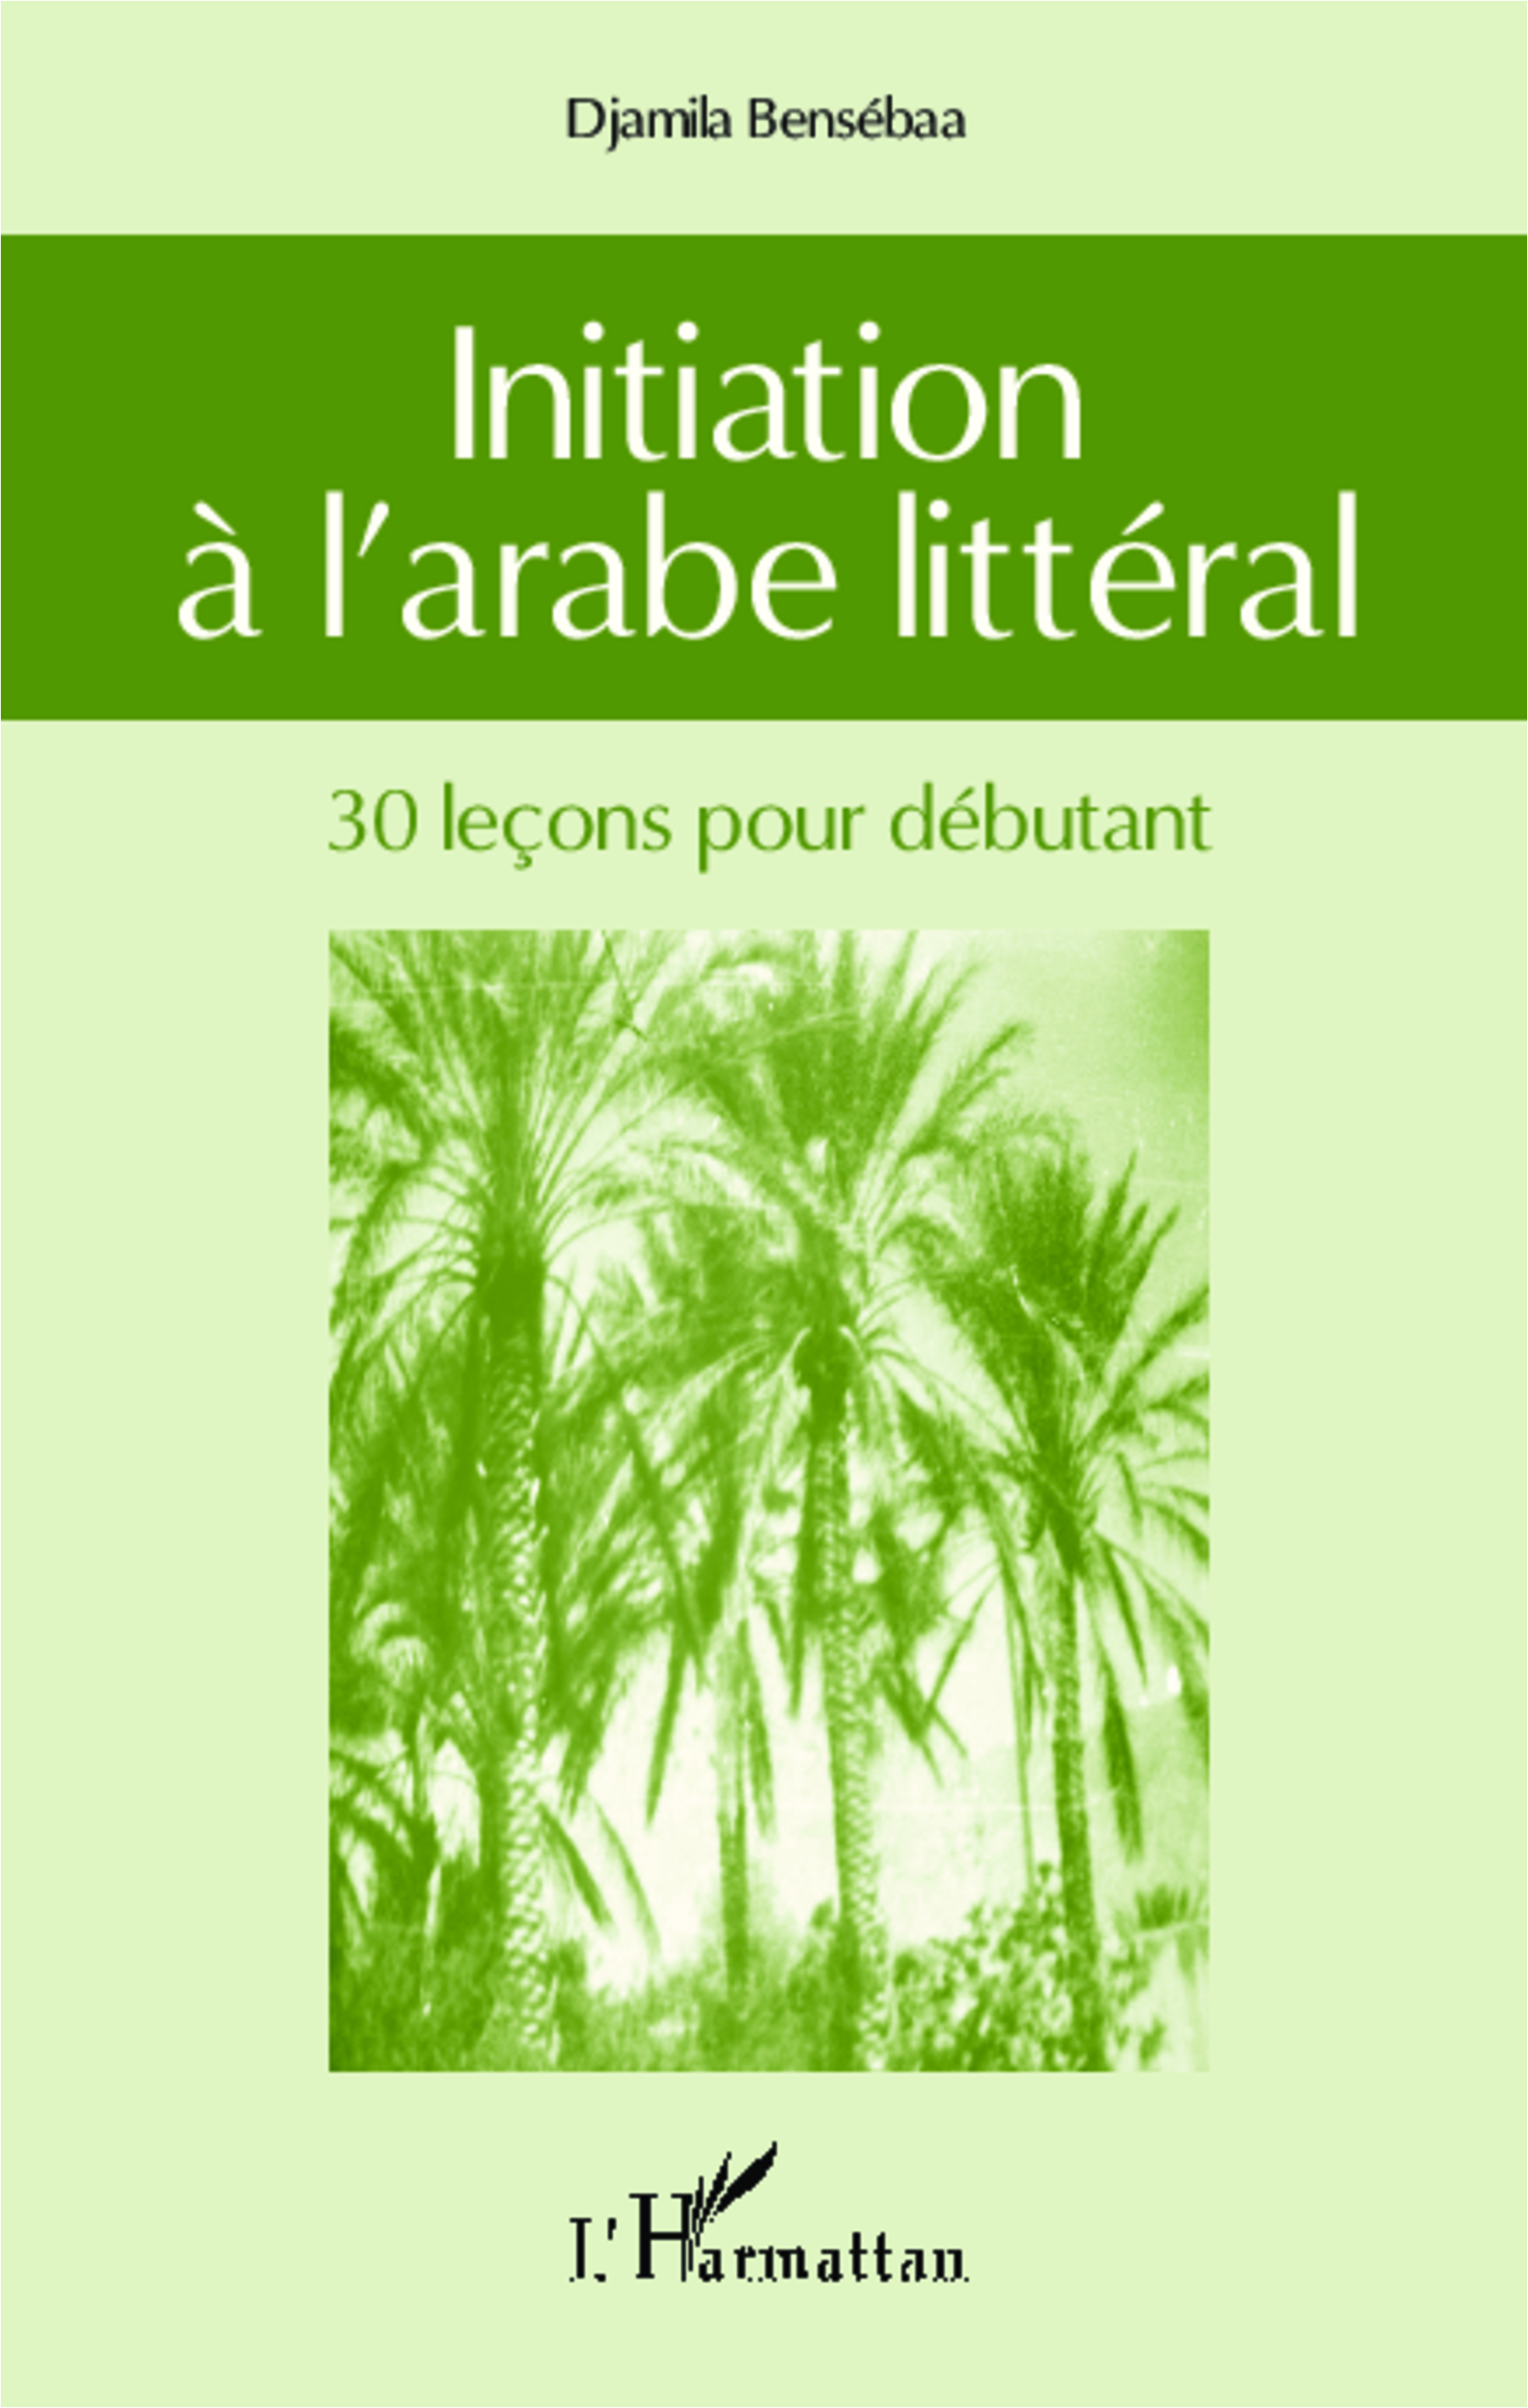 Initiation à l'arabe littéral